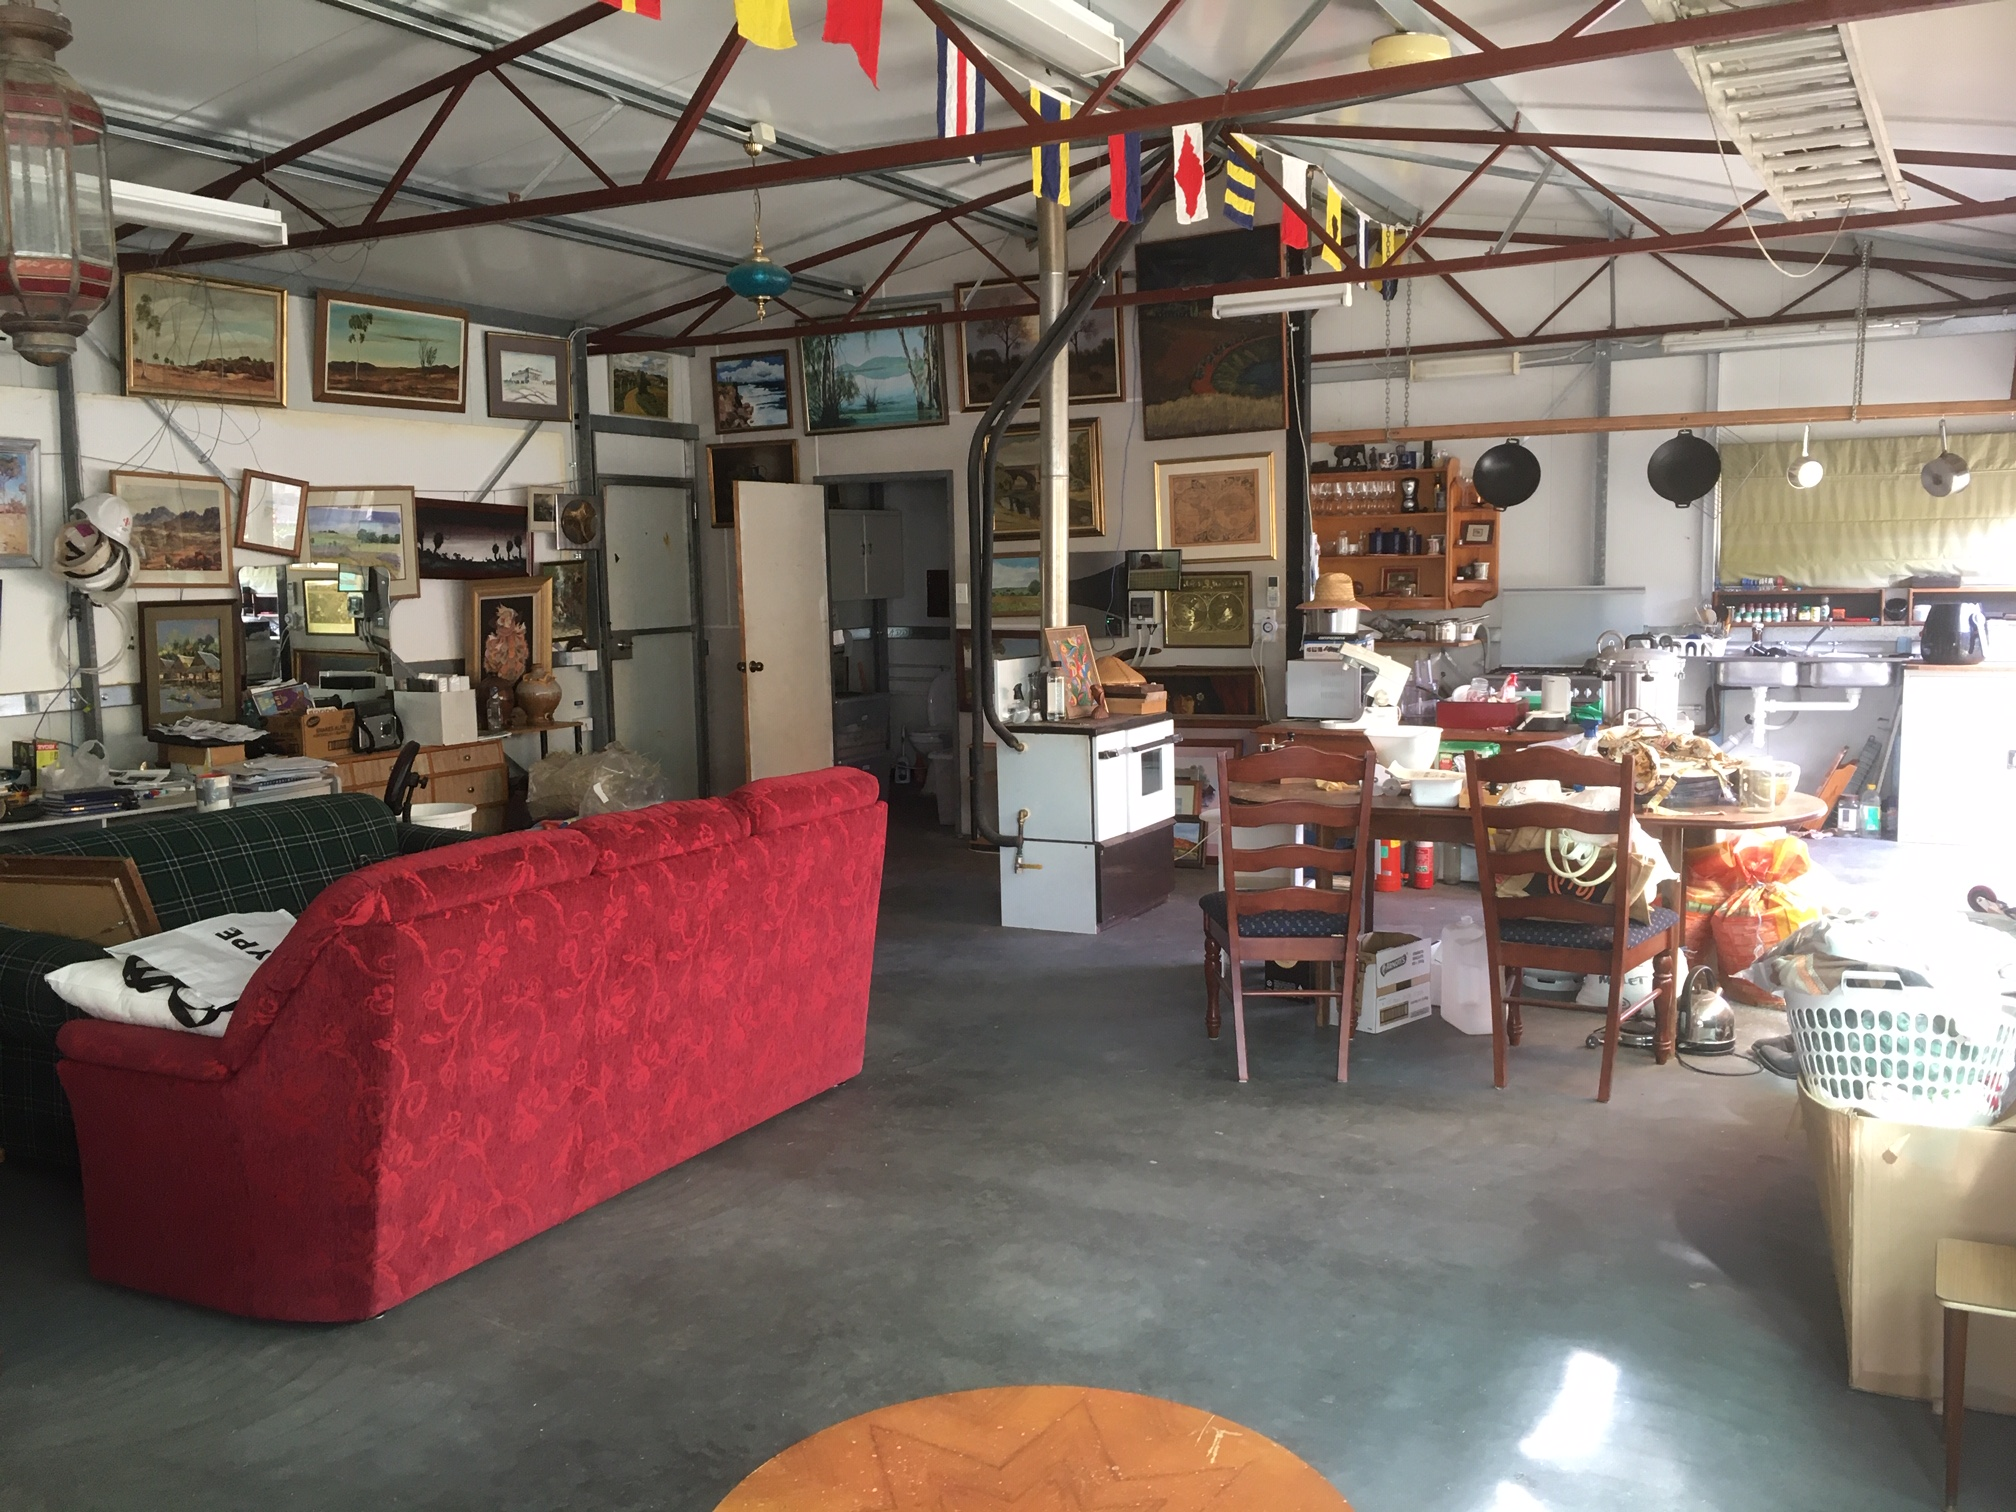 Man caves and male space-img_6031-jpg